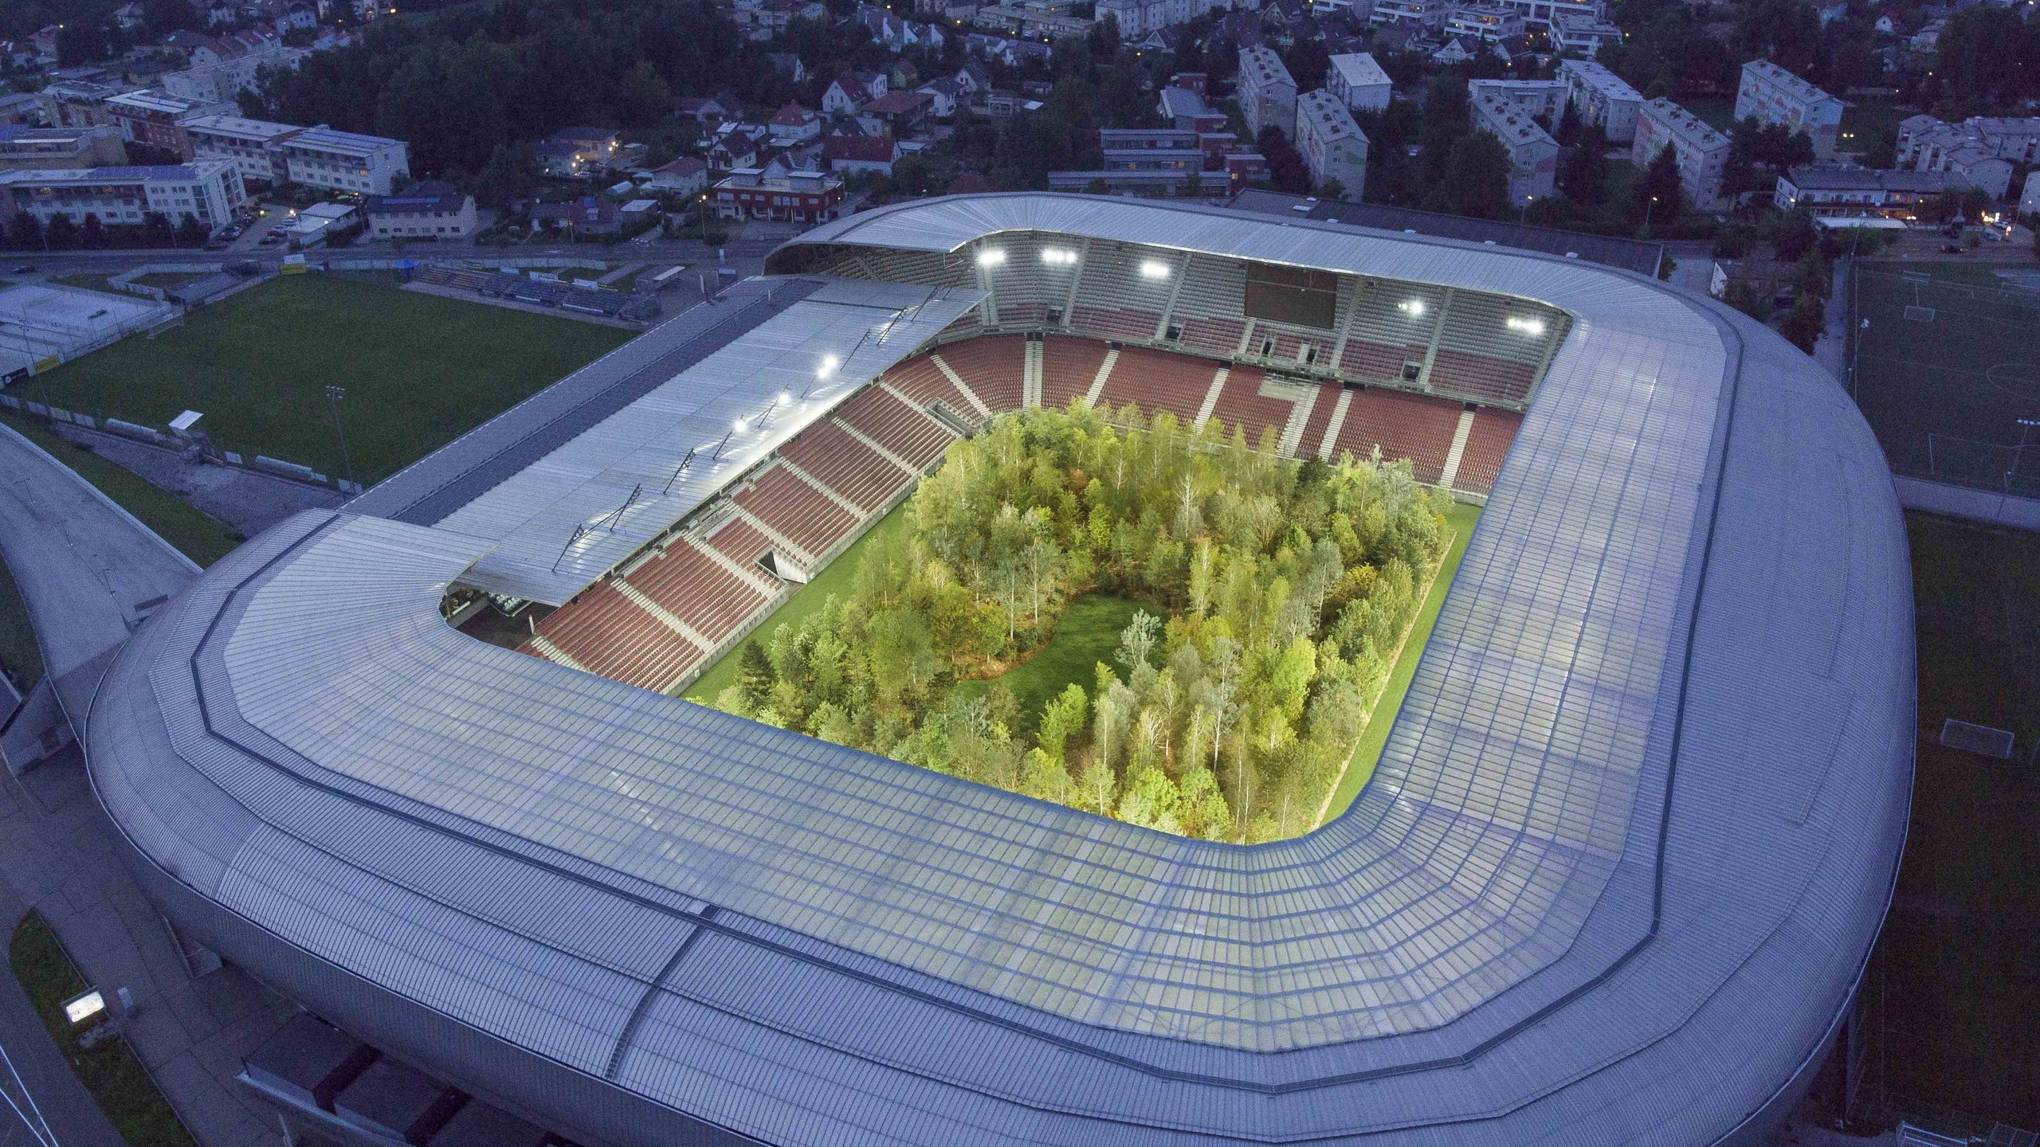 An artist planted 300 trees in a stadium to warn about climate change